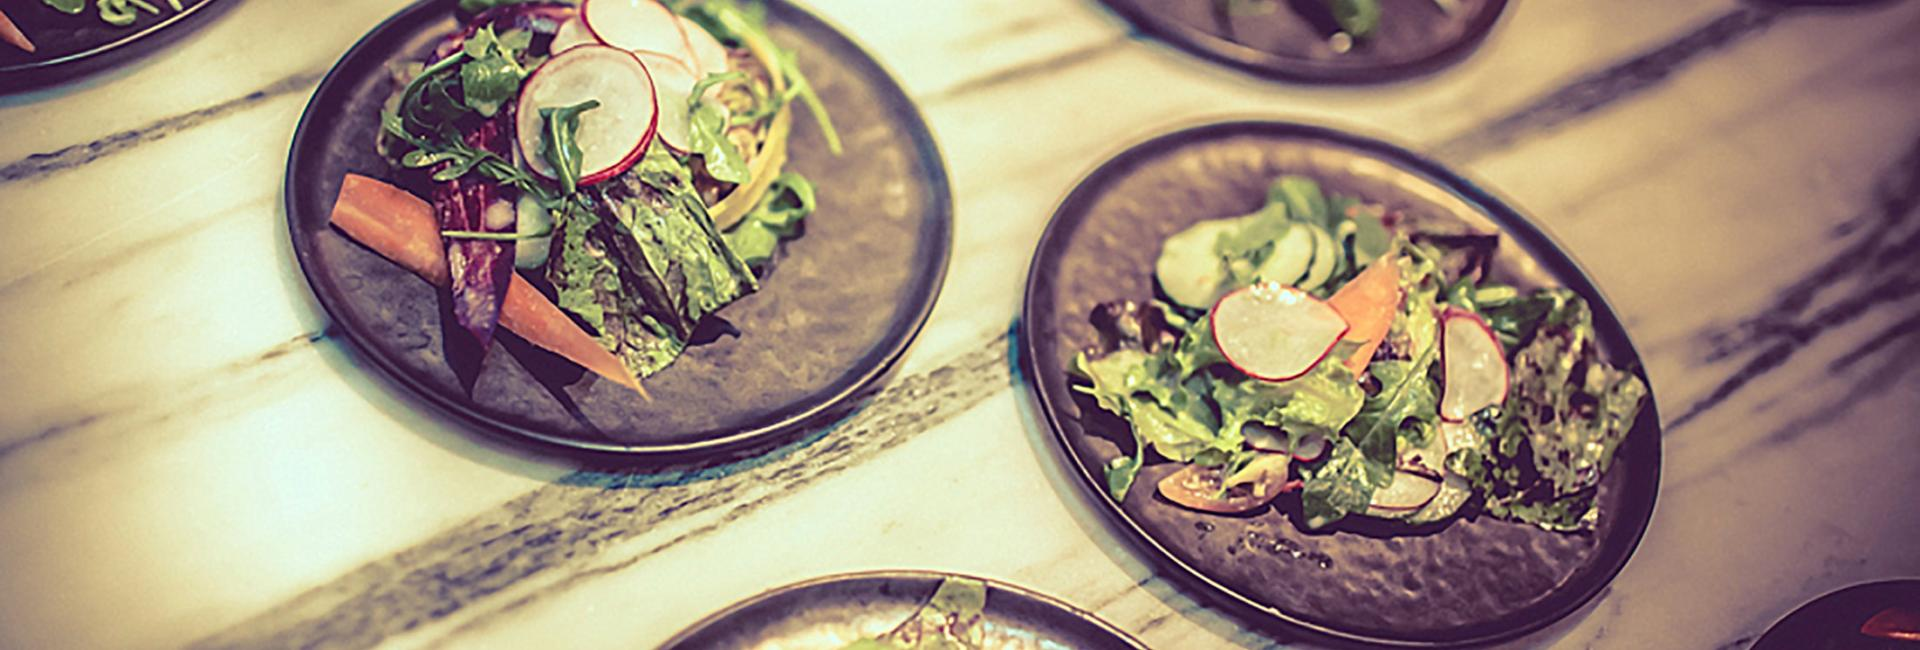 A close-up of plated side garden salads on a wooden table.